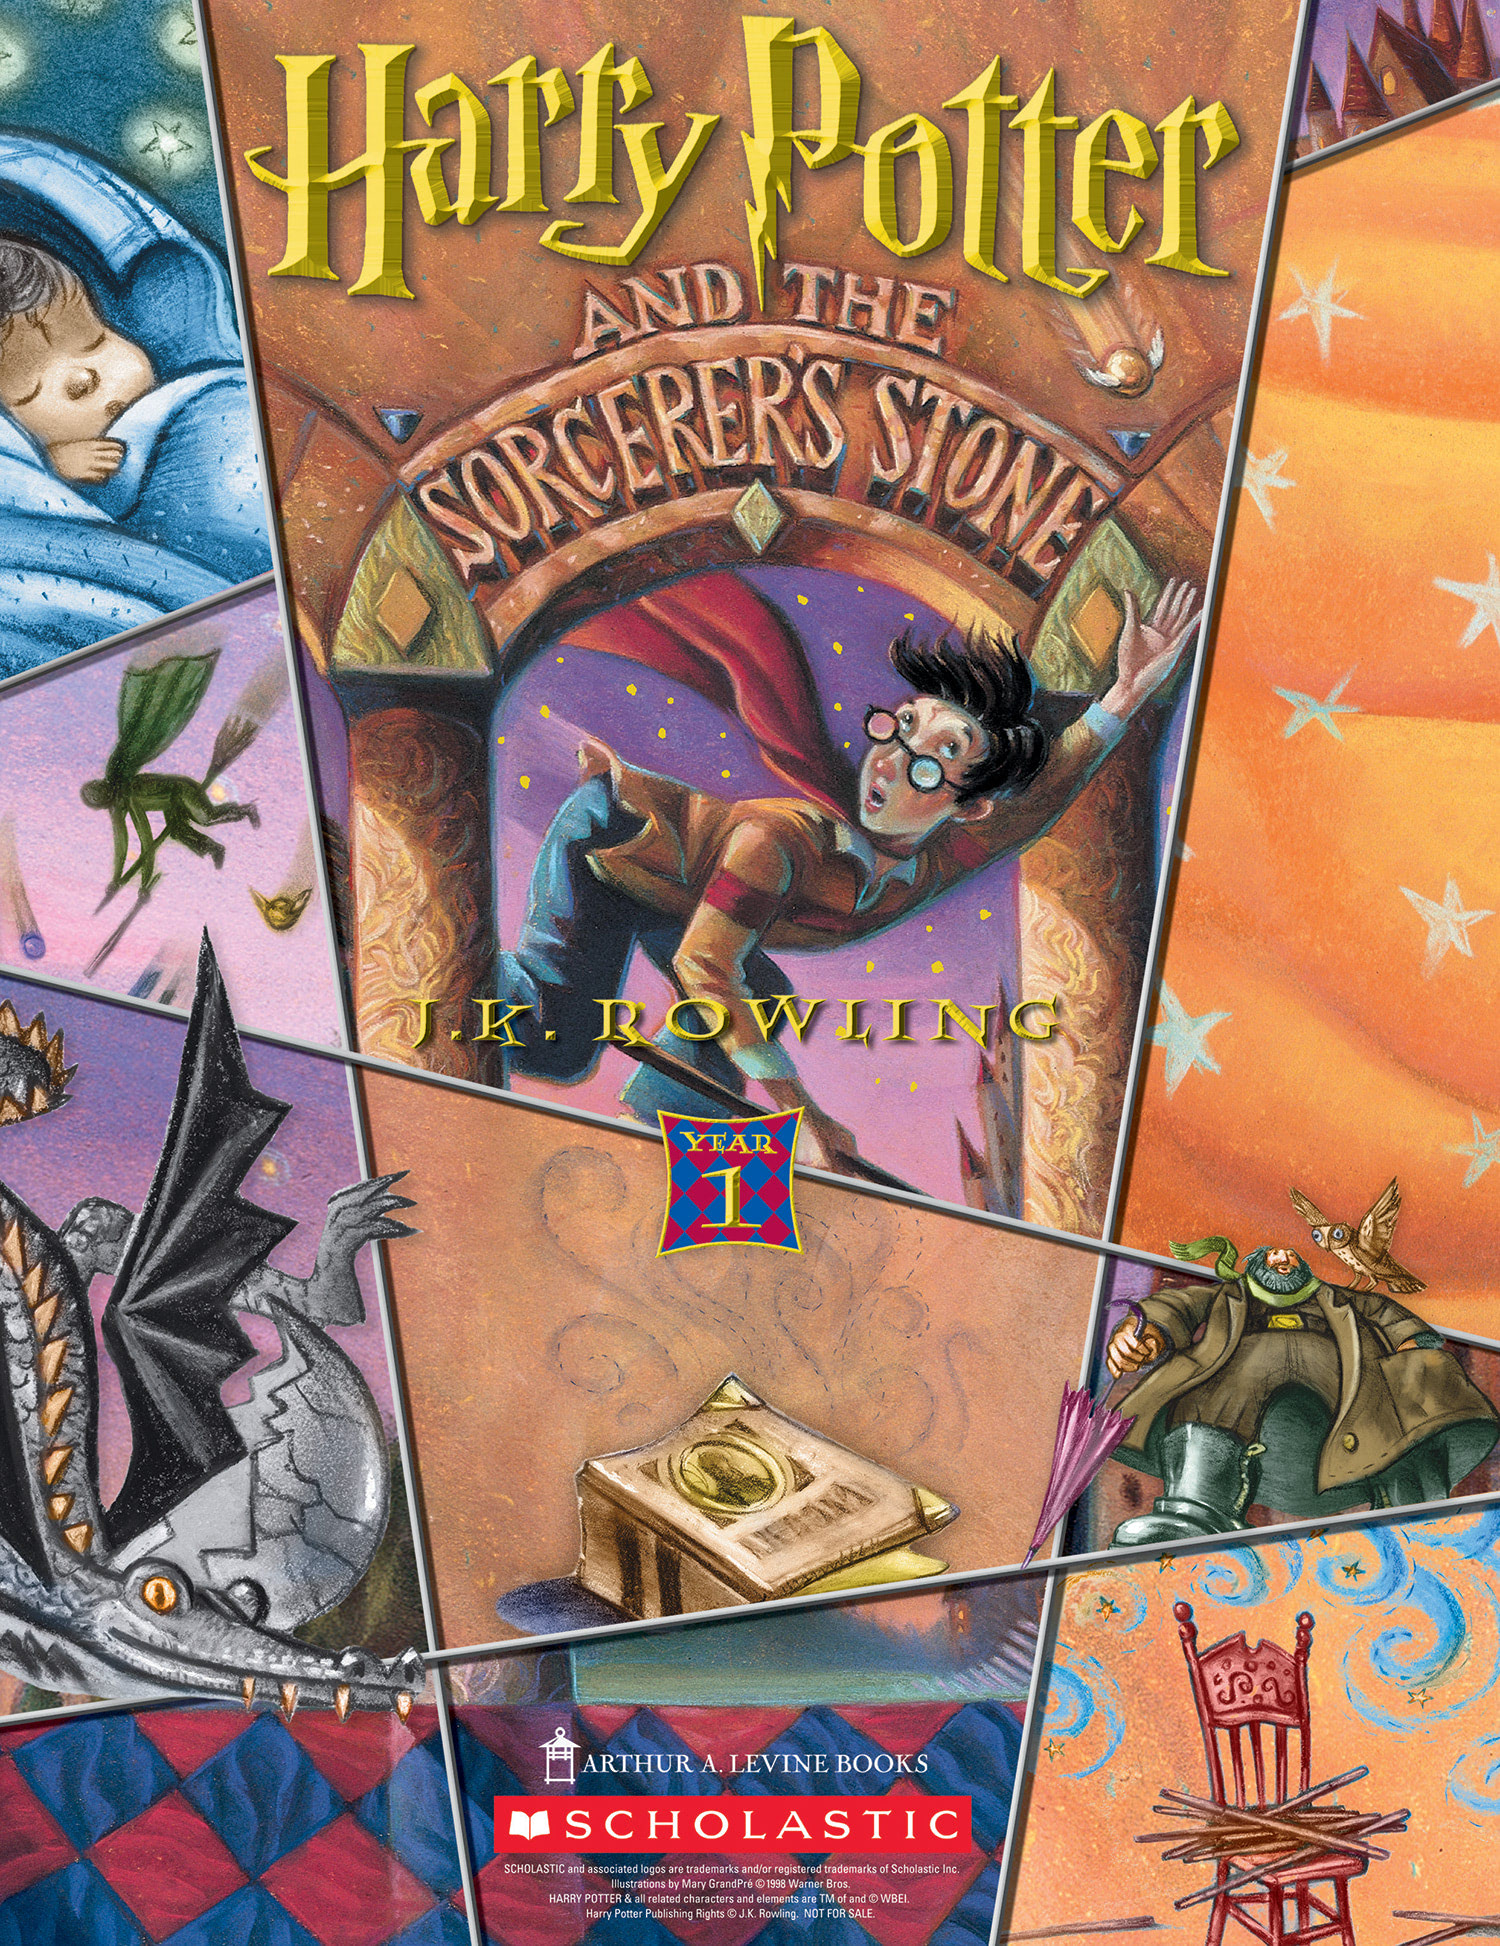 'Sorcerer's Stone' (Year 1) Scholastic promotional poster